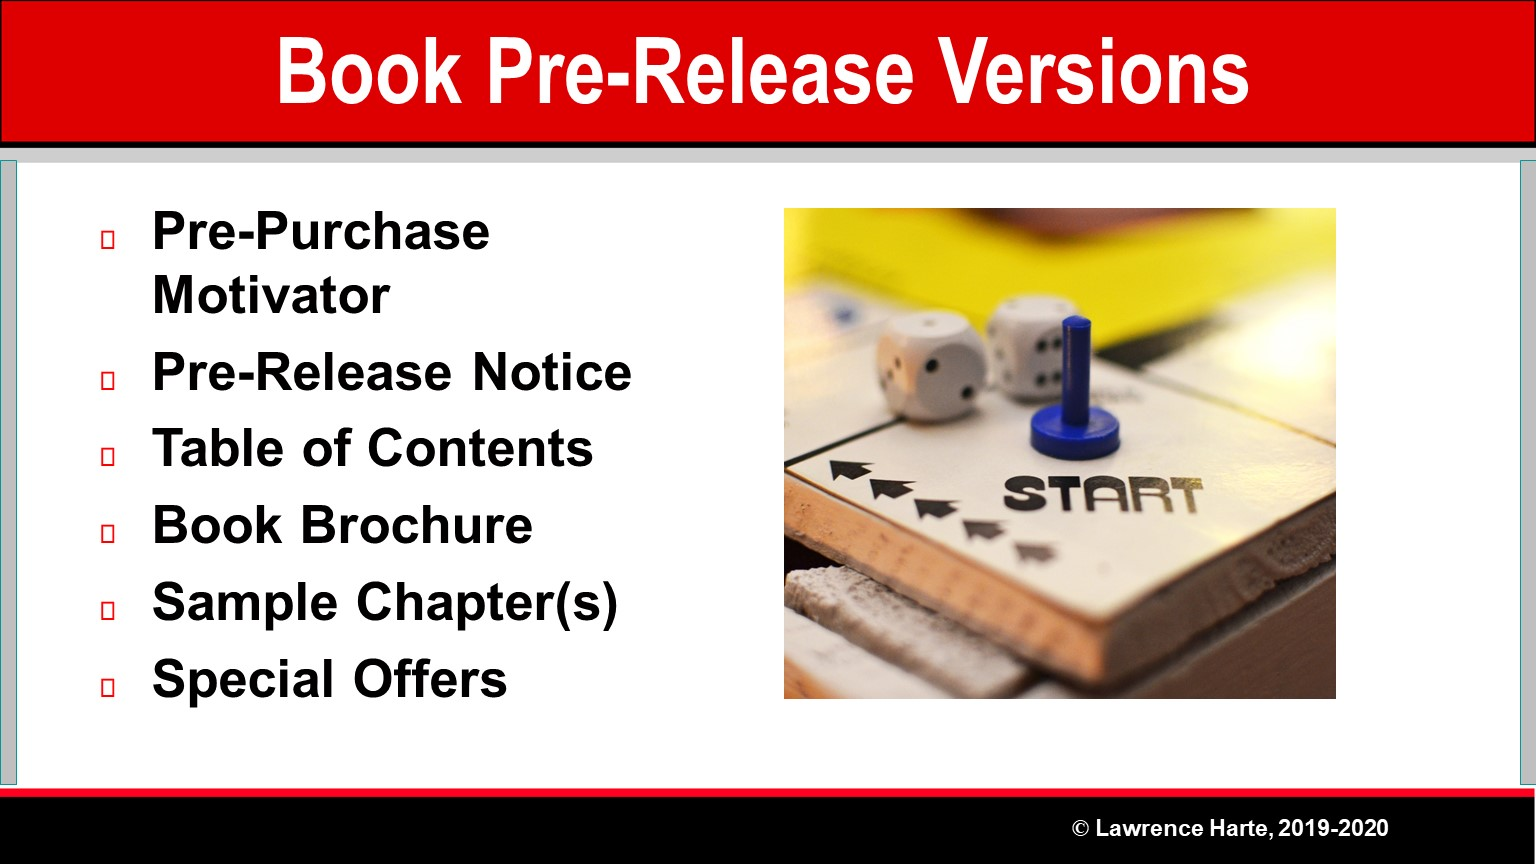 Book Pre-Launch Marketing Pre-Release Versions